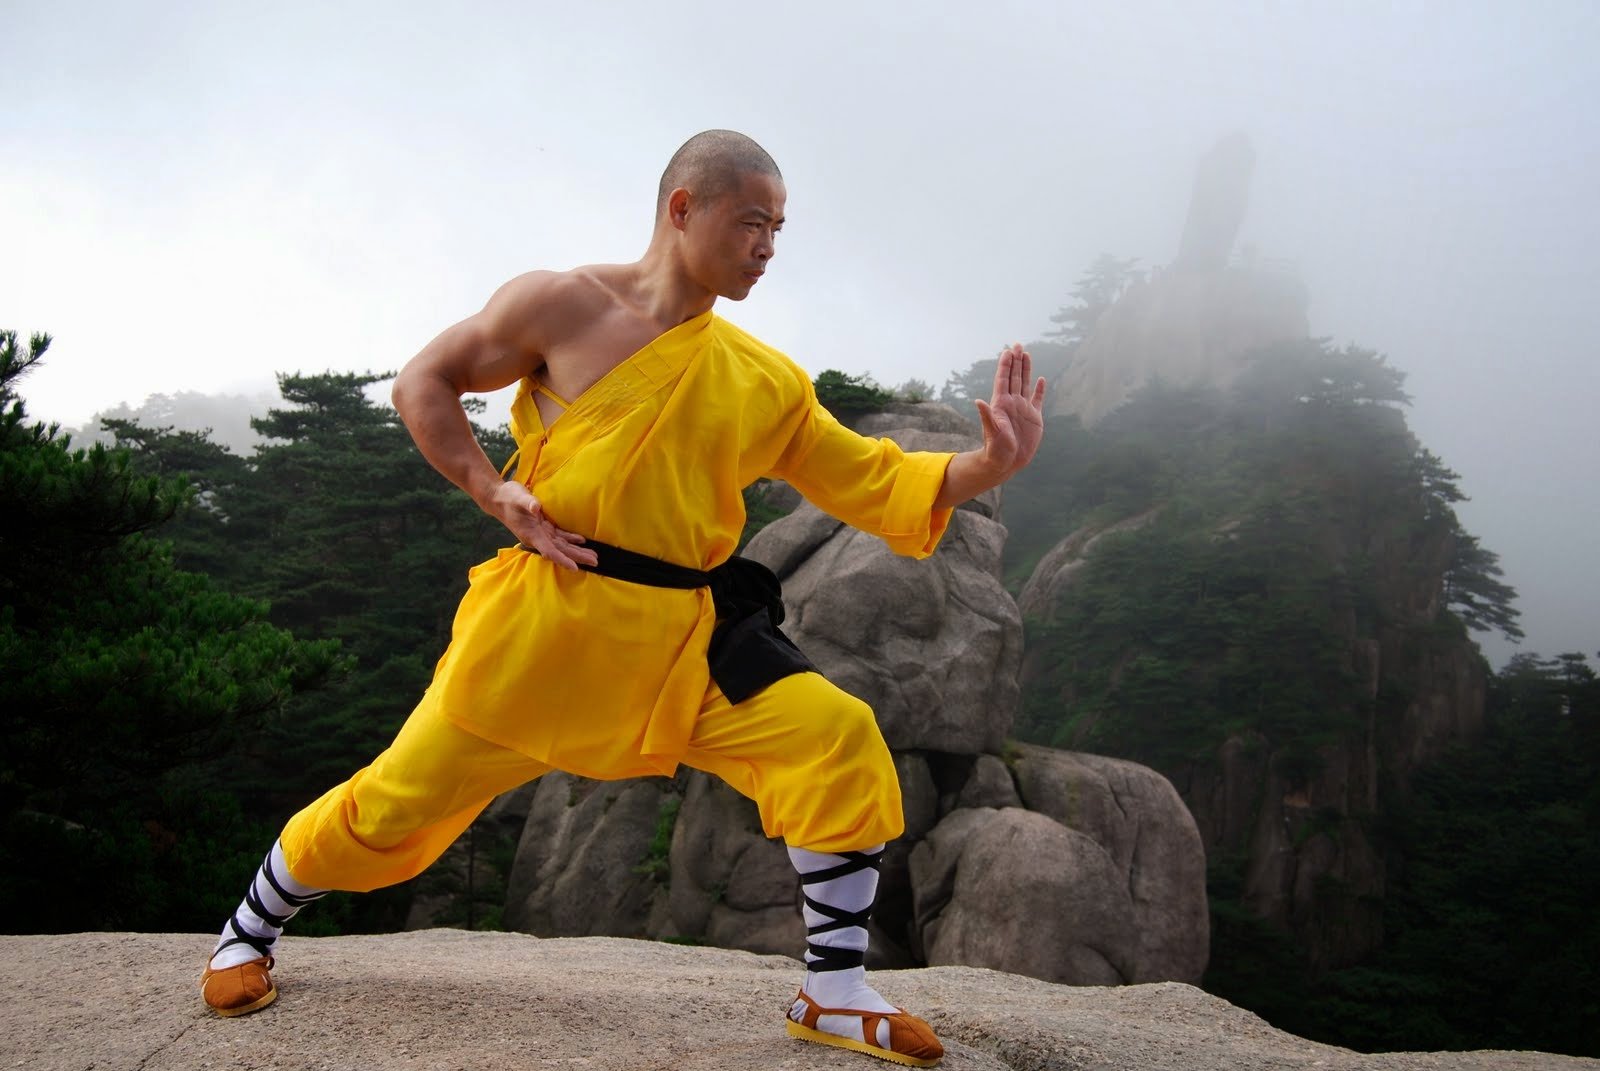 Qiqong or Tai Chi – indoor exercise